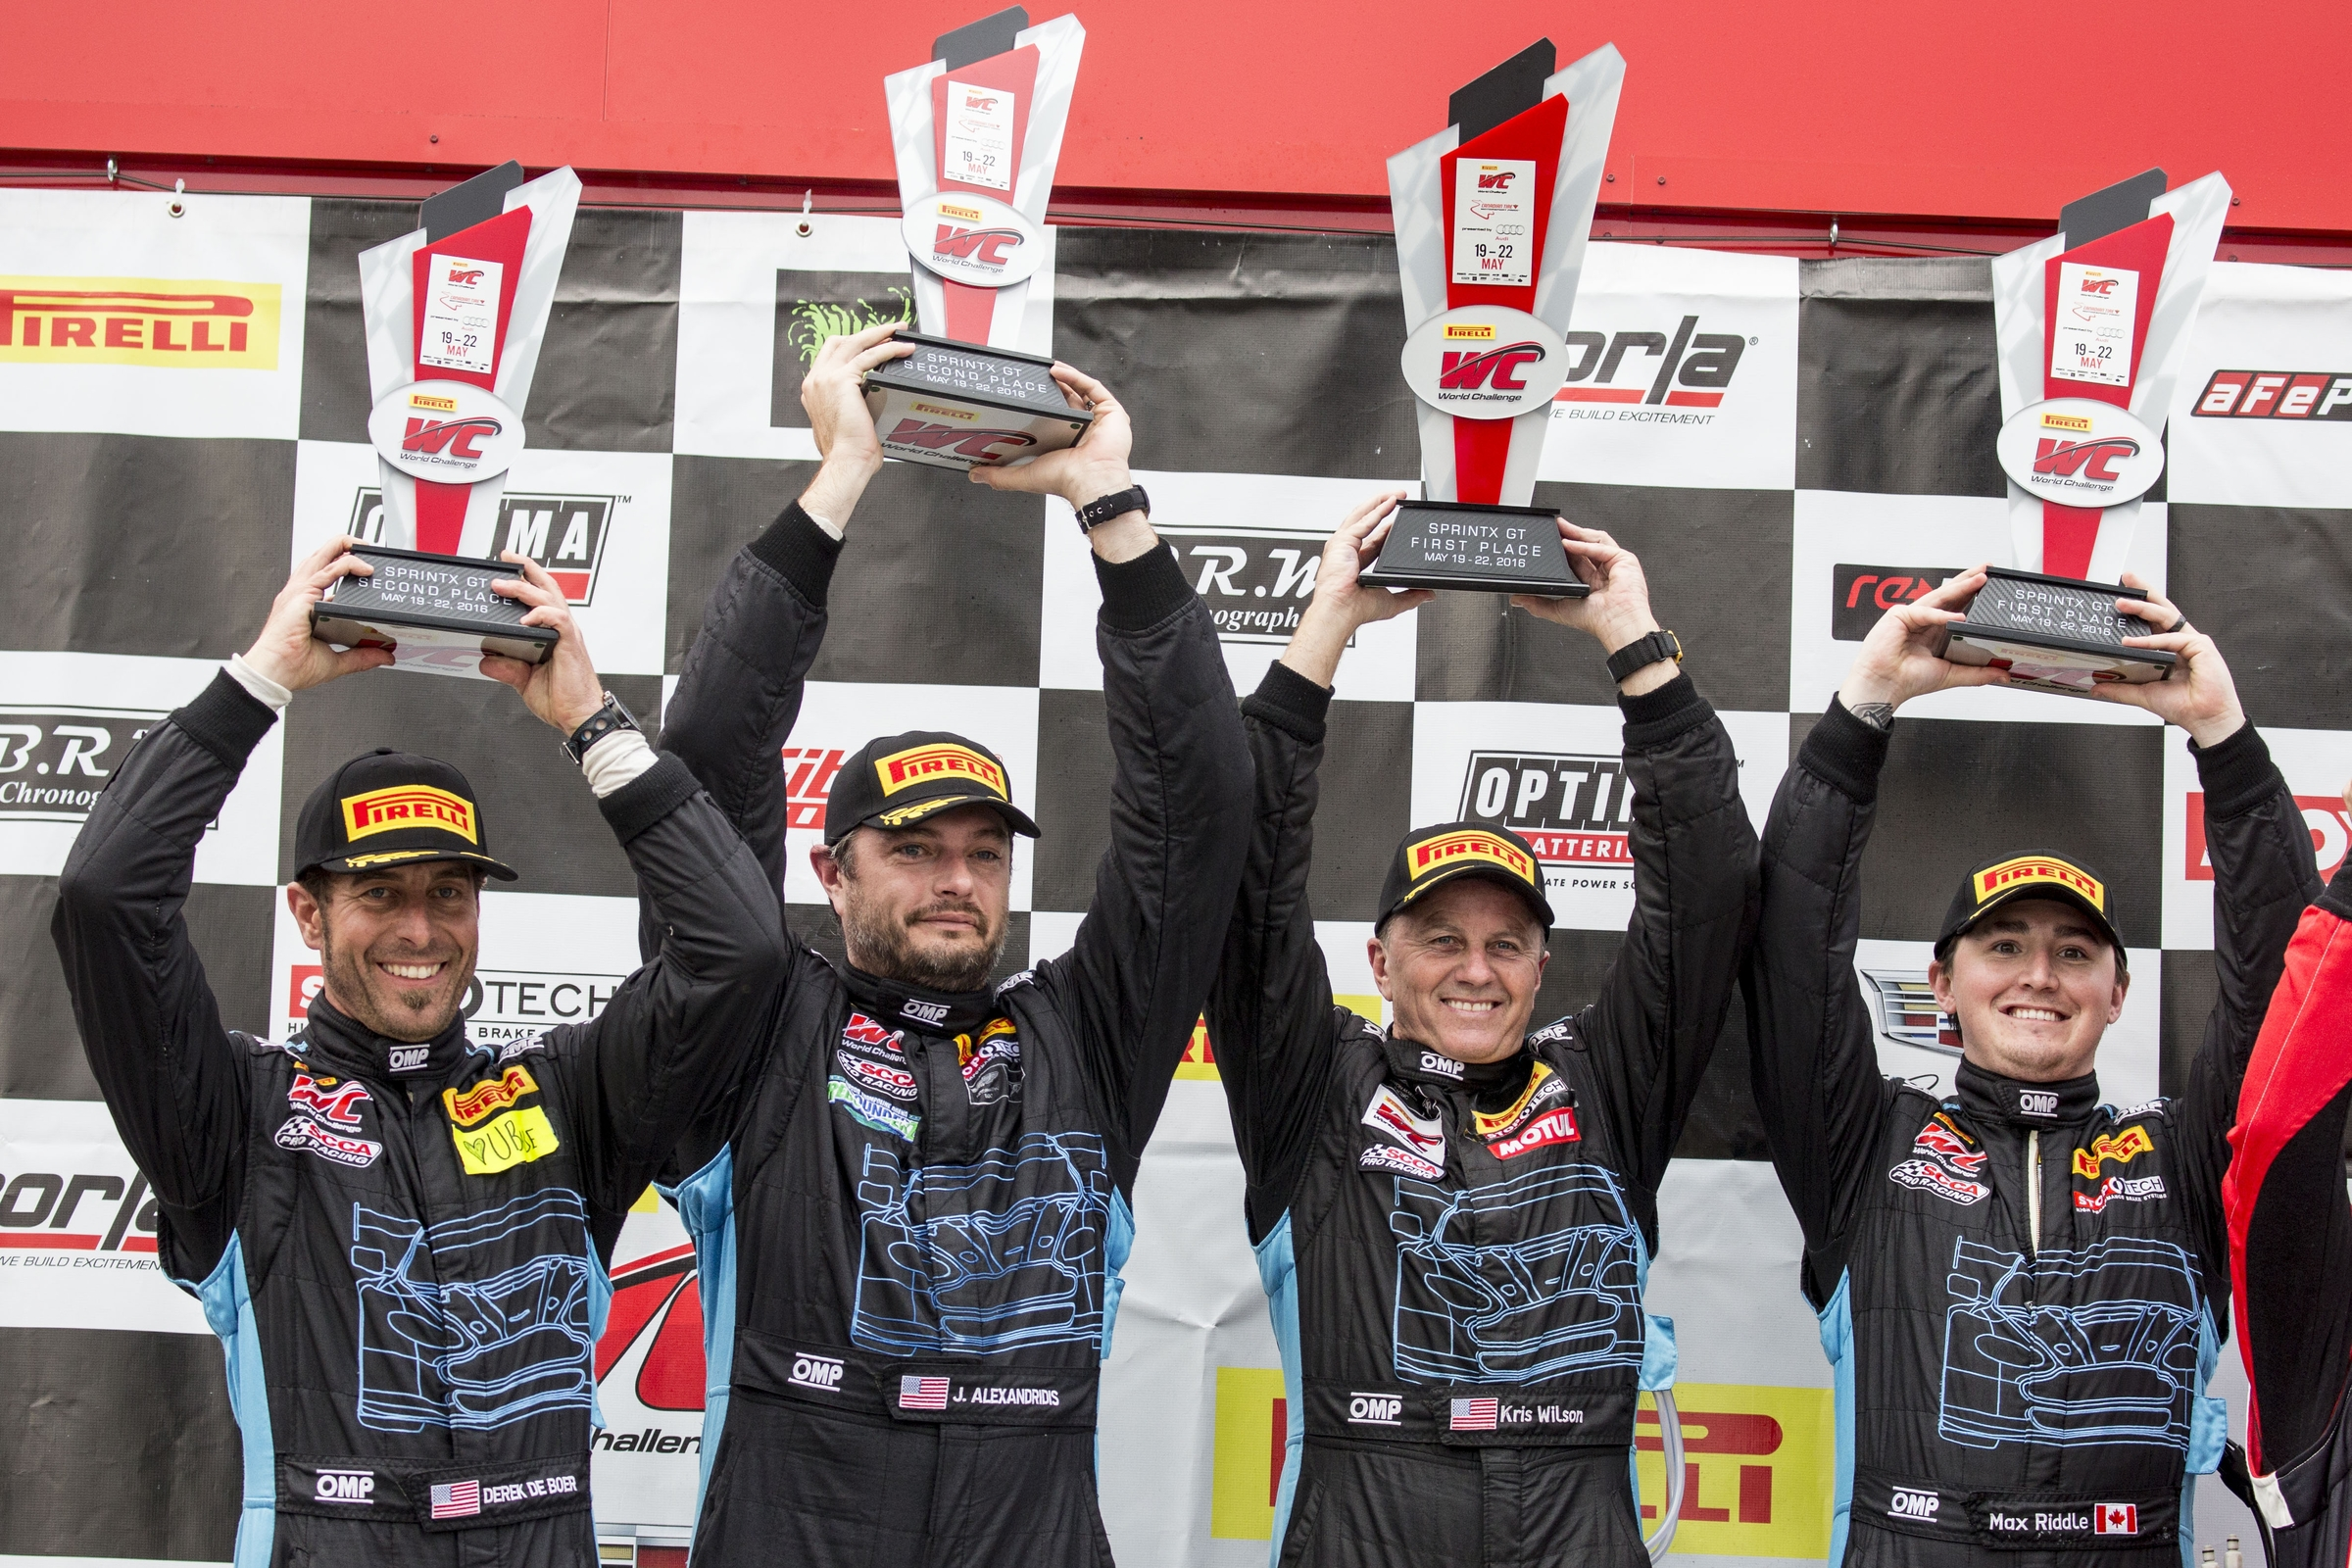 Victory in Canada: TRG-Aston Martin Racing Earns Three Wins, Six Podiums Over PWC Race Weekend